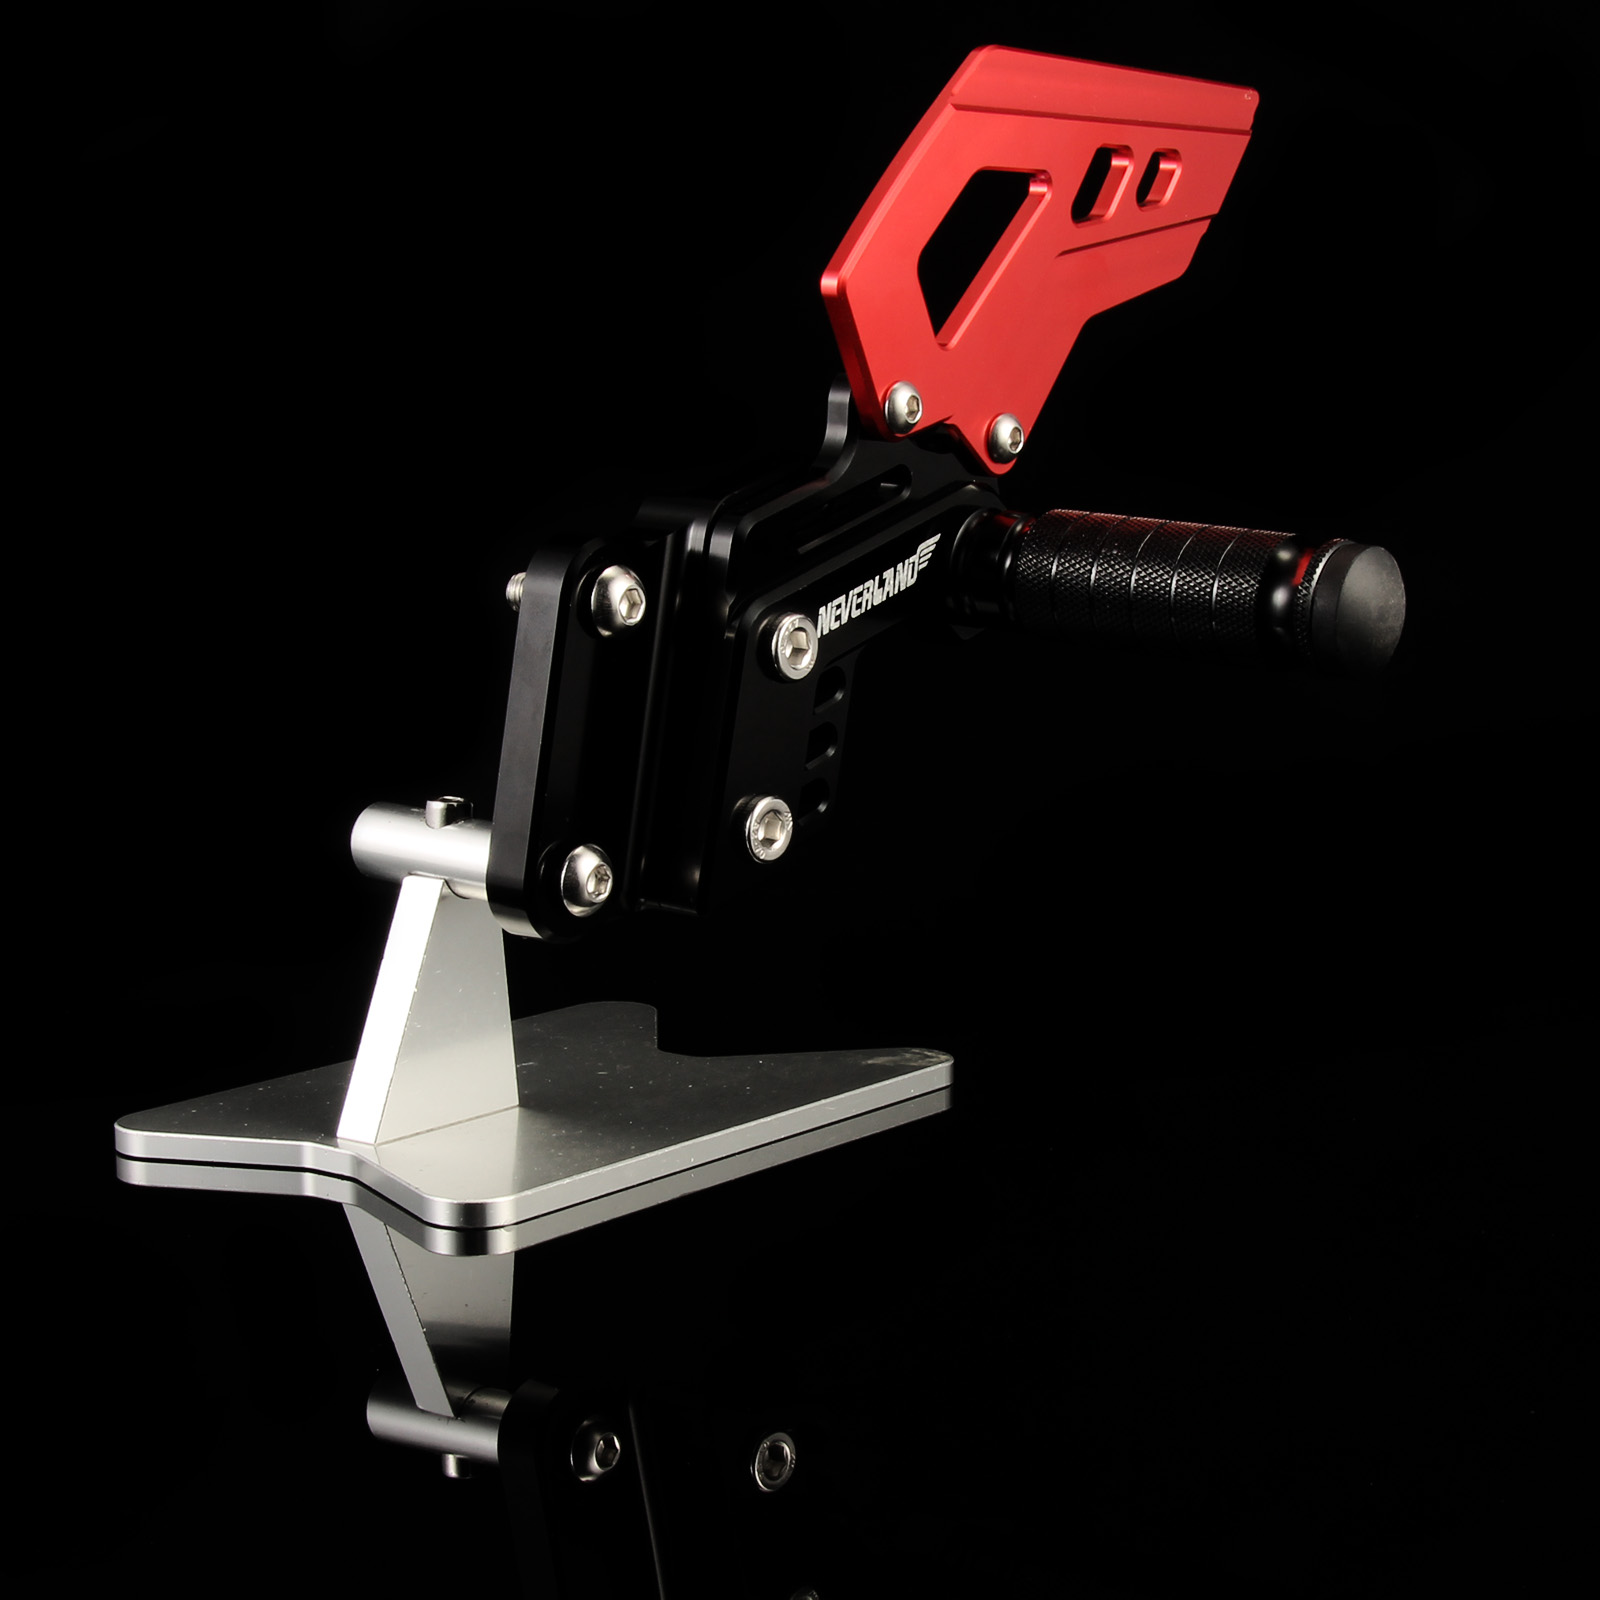 Rearsets Rear Set Foot Pegs Pedal for Motocycle Adjustable Moto Pedal Footrest Footpegs Fashion Pegs GSXR 600 GSXR 750 2006 2010 in Foot Rests from Automobiles Motorcycles